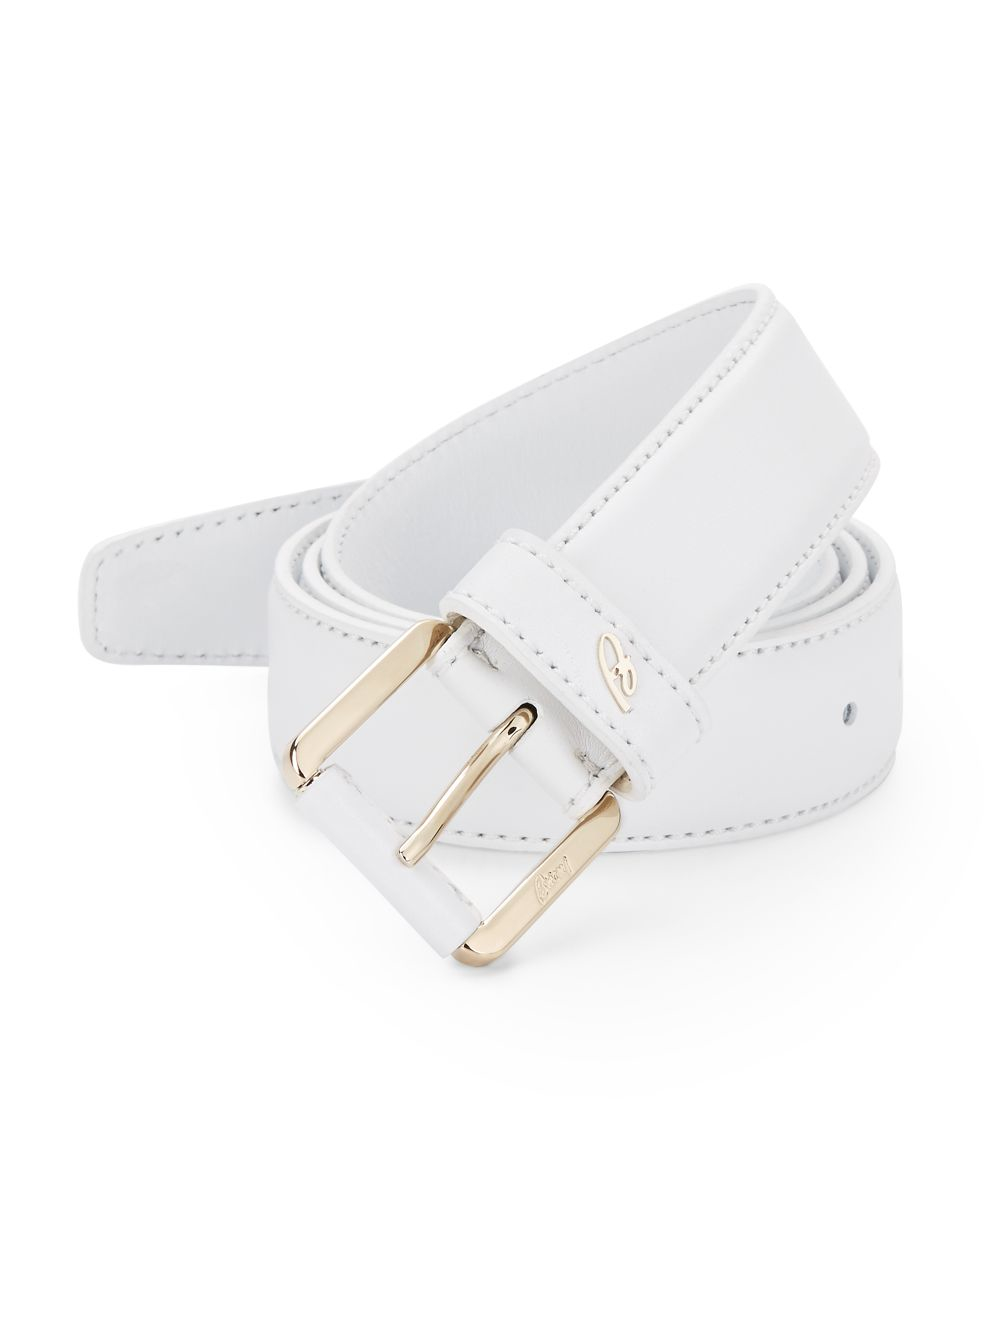 Lyst Brioni Leather Belt In White For Men